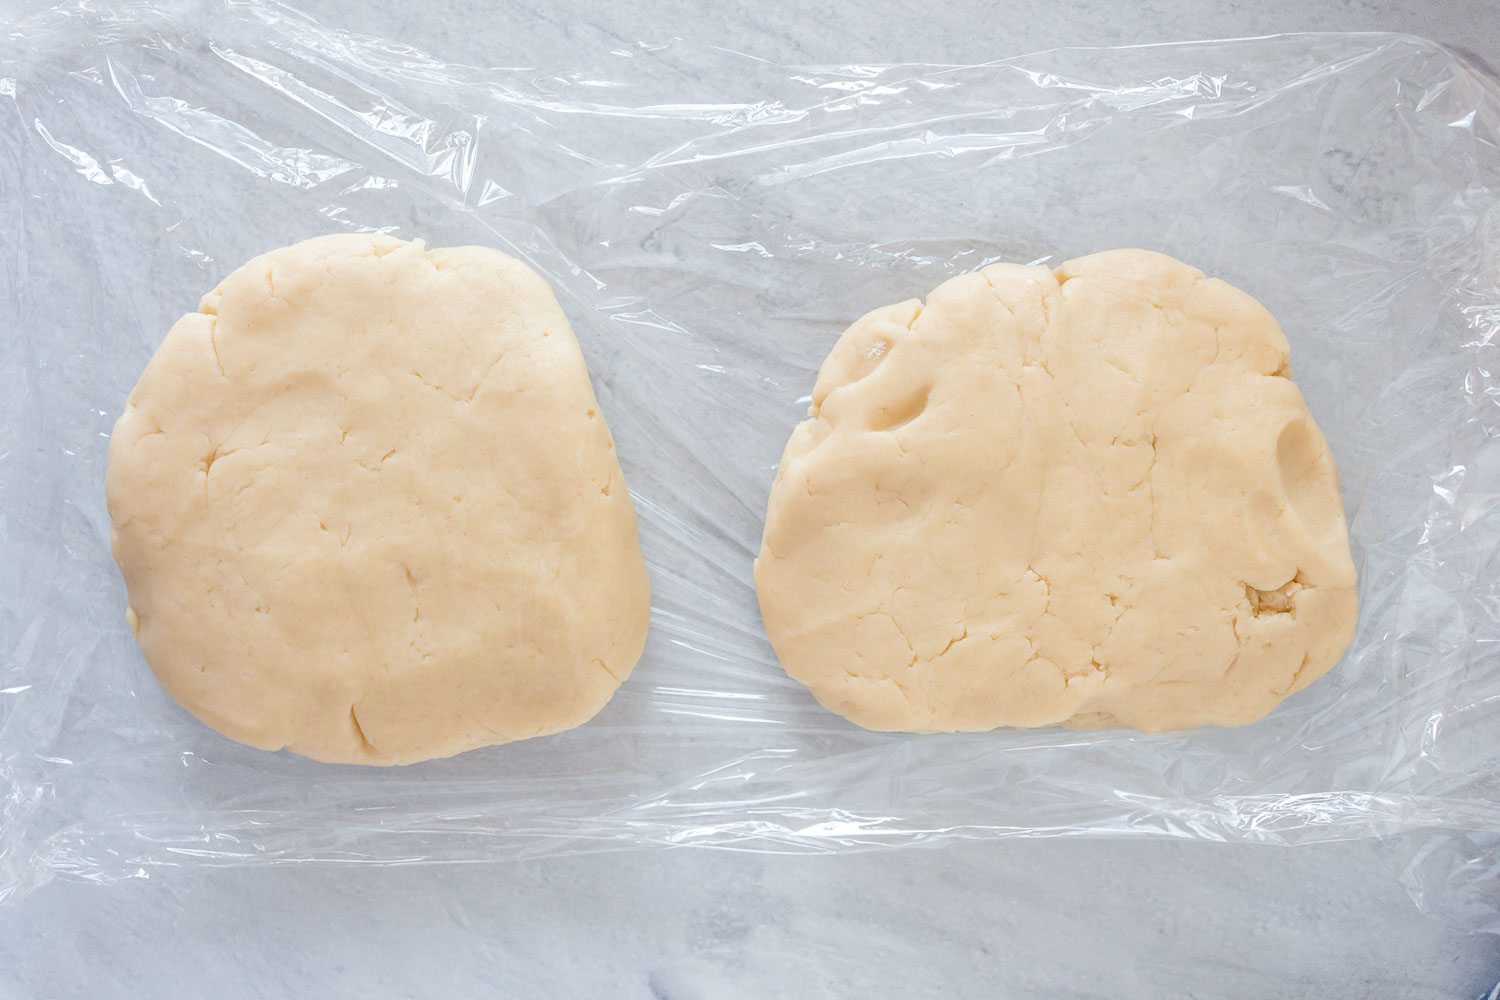 Two slabs of dough on plastic wrap.